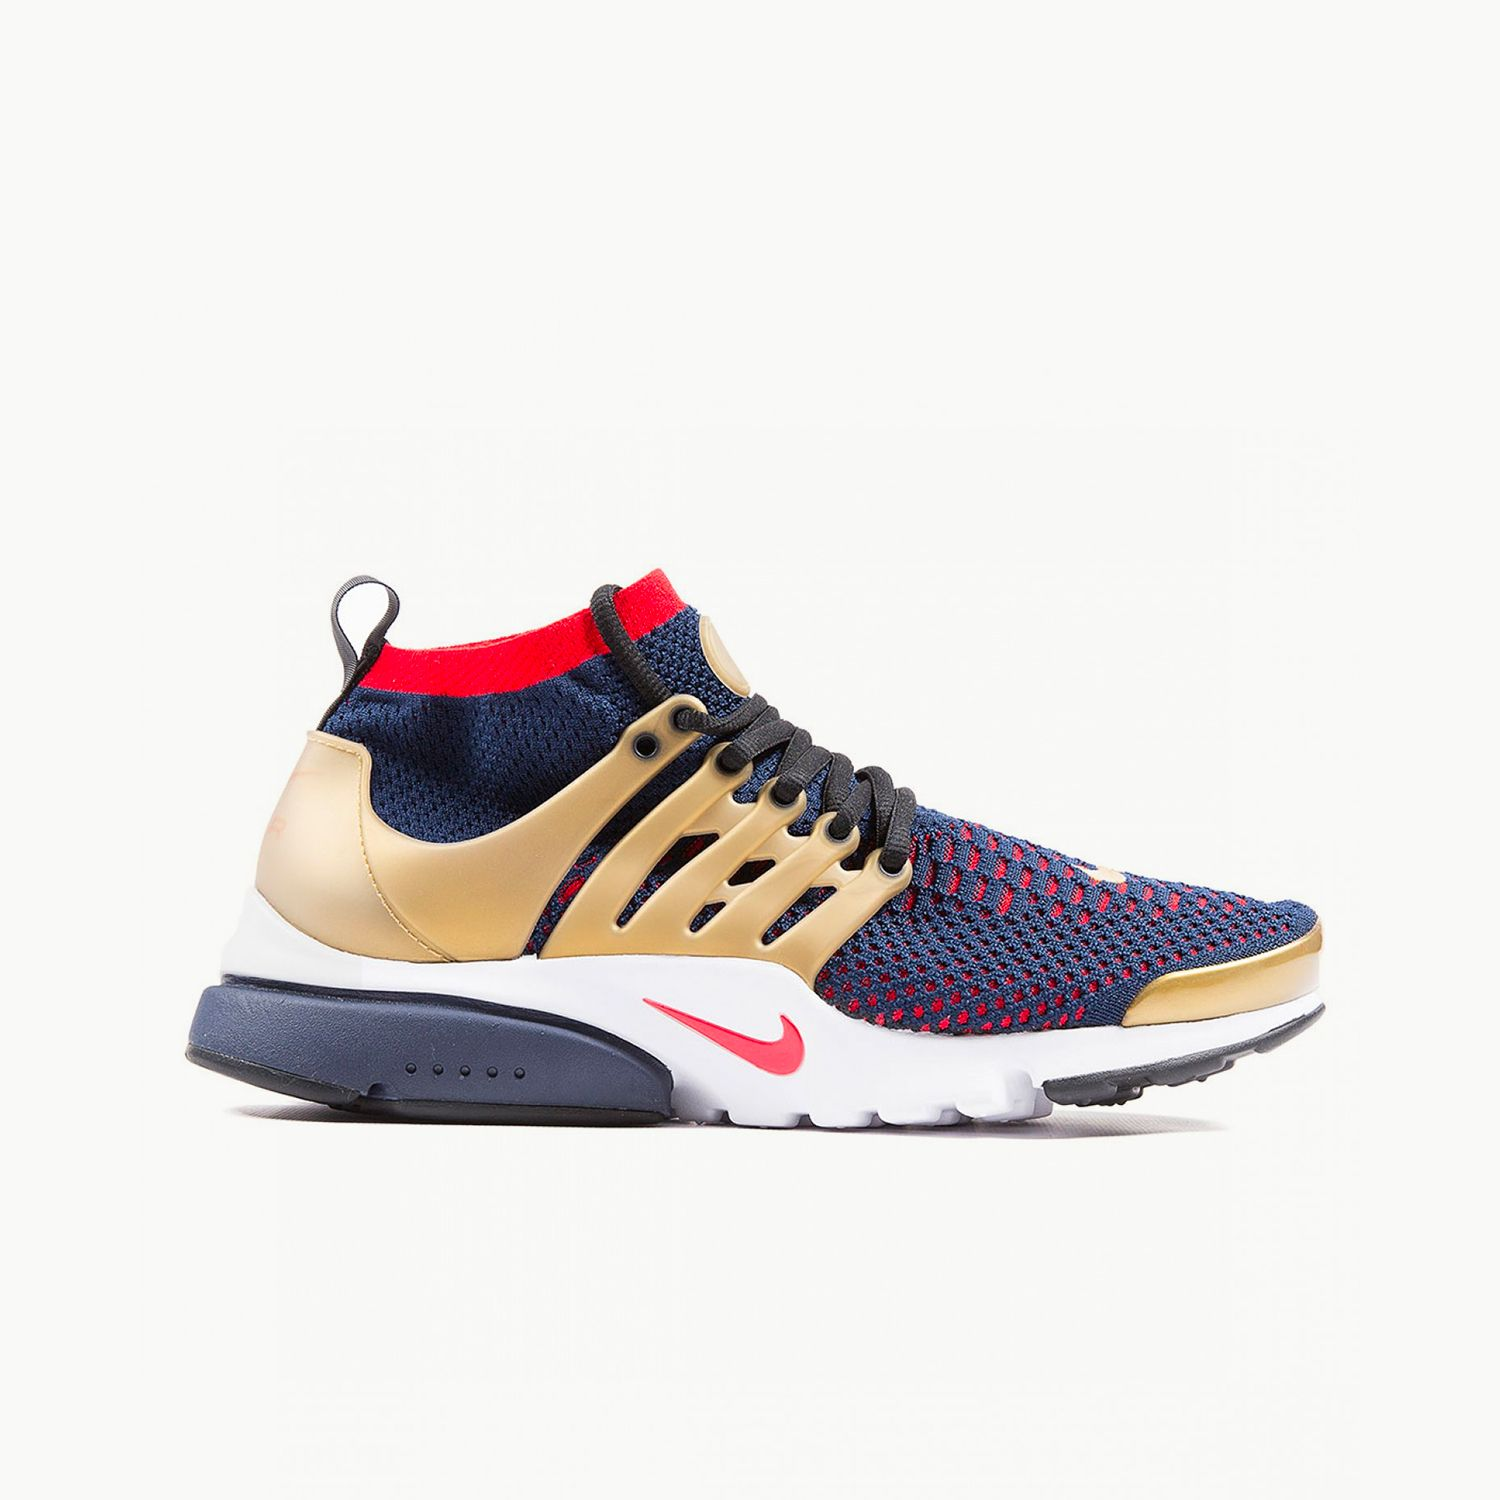 Nike AIR PRESTO ULTRA FLYKNIT Navy/Red/Black